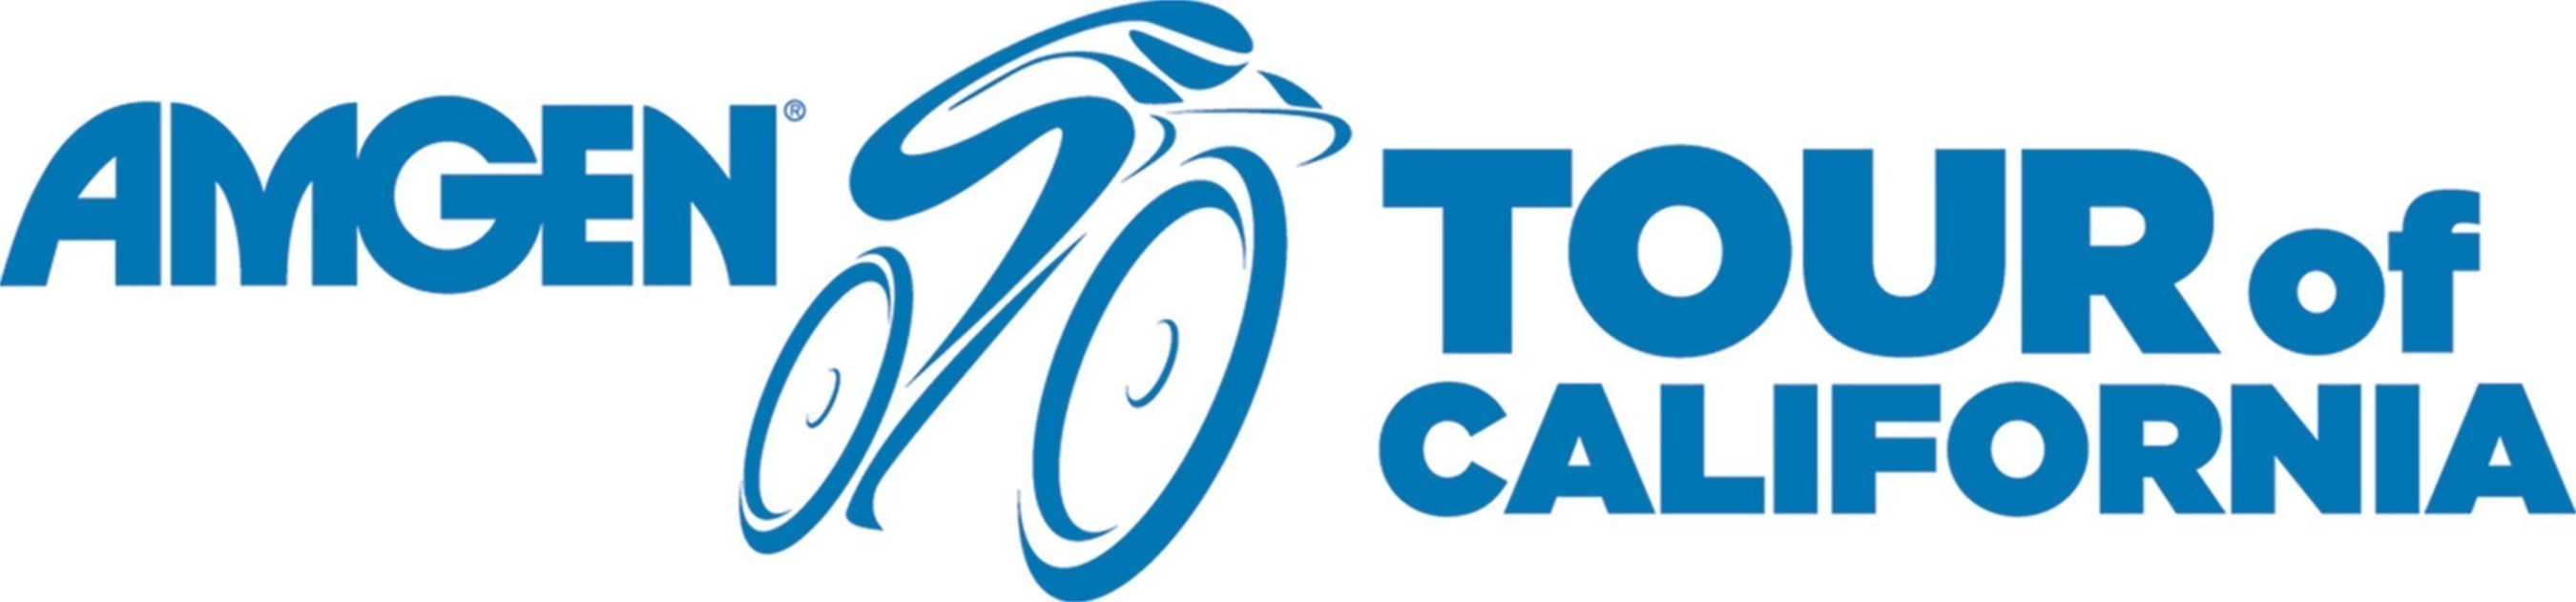 Host Cities And Racing Schedule Announced For 2017 Amgen Tour Of California